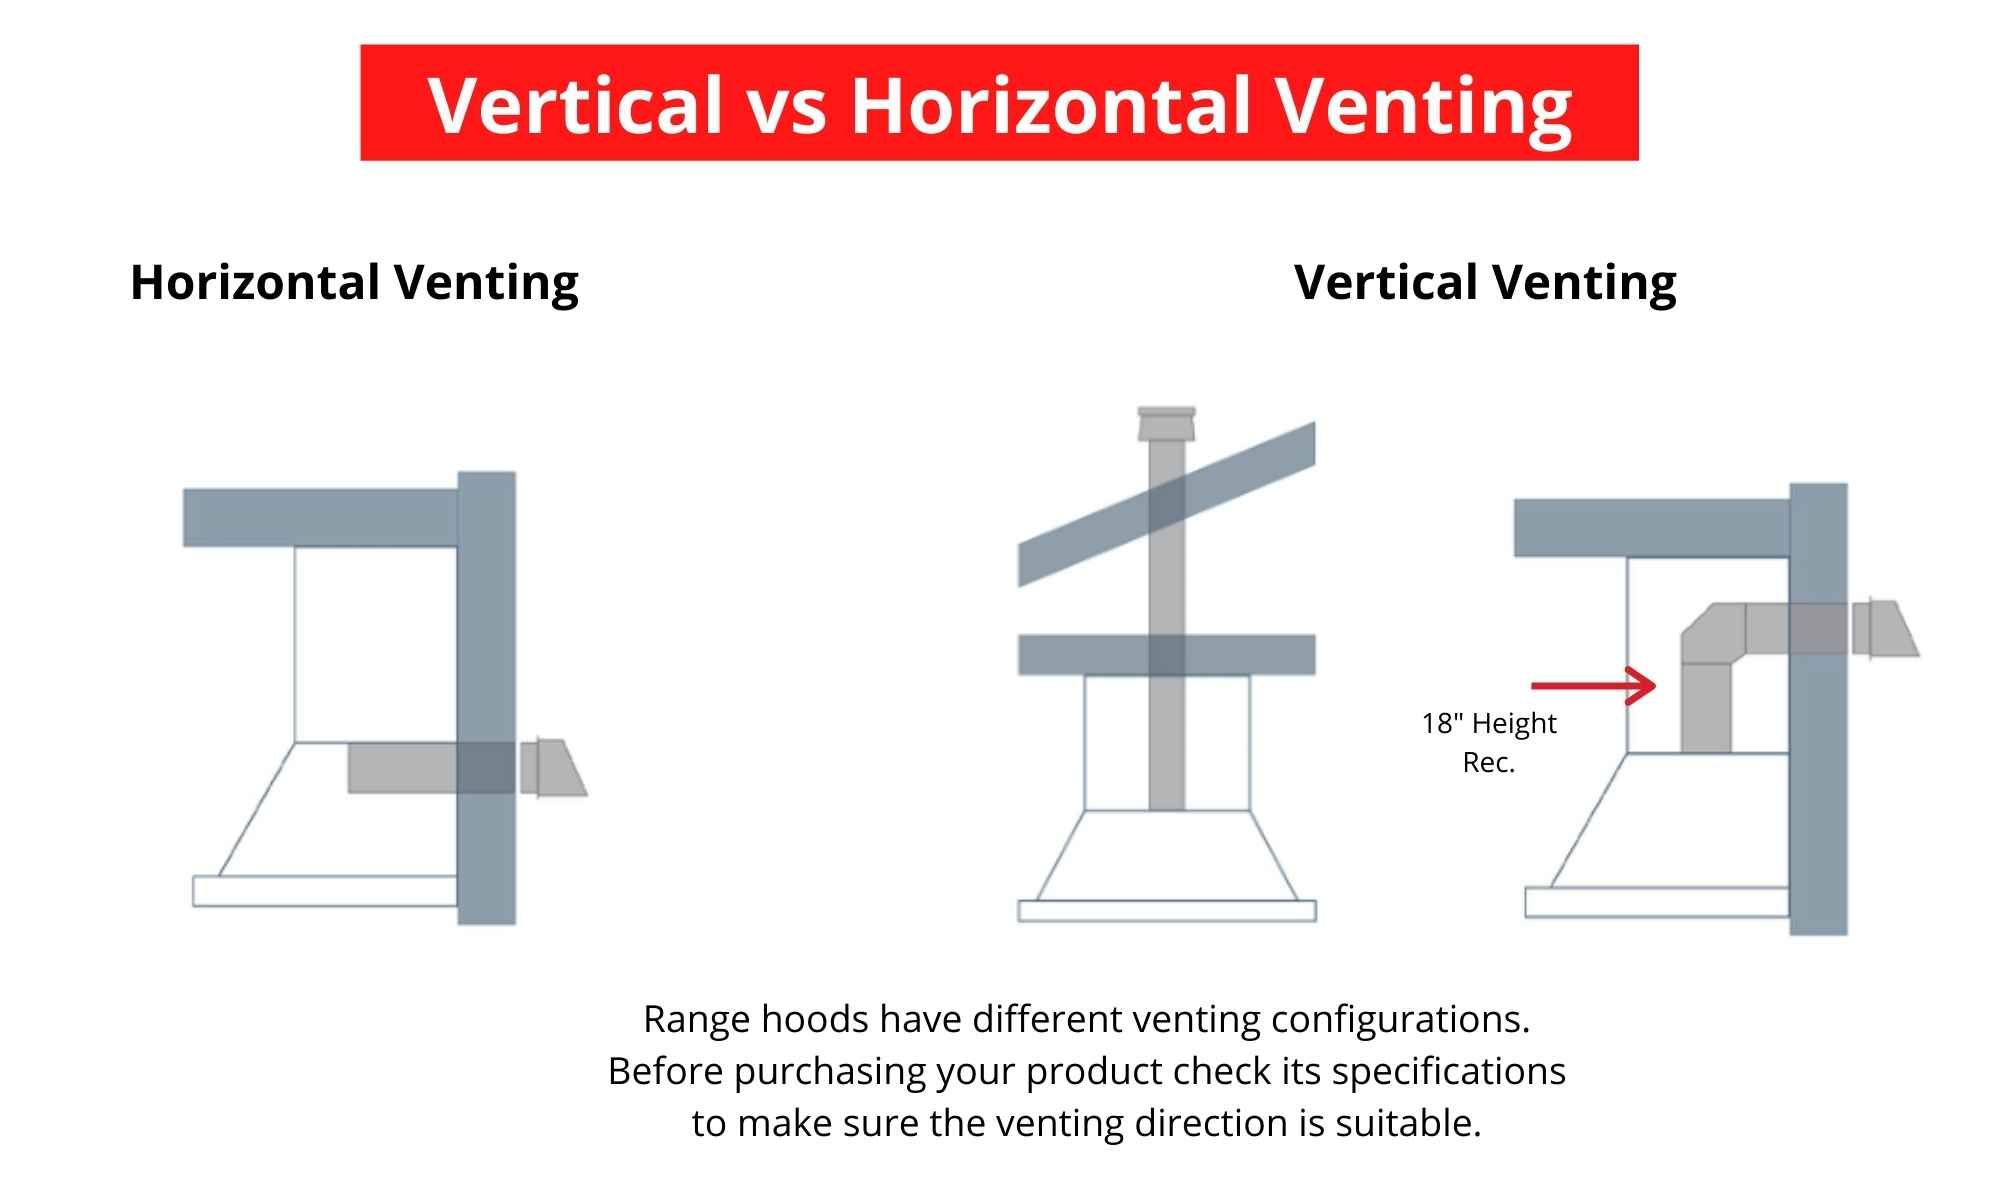 Vertical vs Horizontal Venting